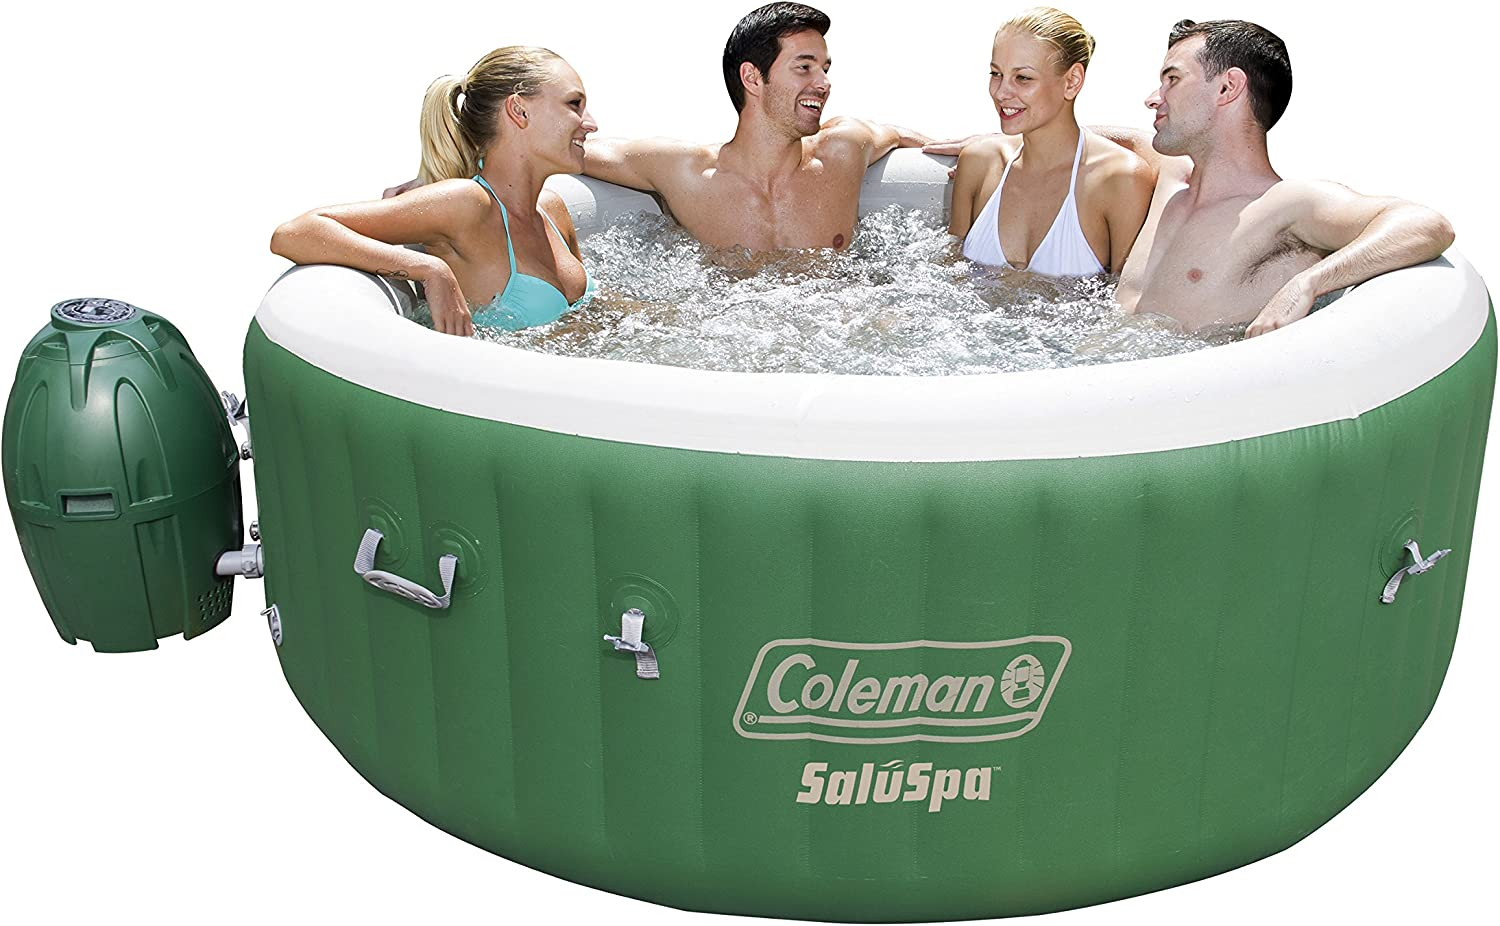 Coleman Saluspa Inflatable Hot Tub Portable Hot Tub W Heated Water System Bubble Jets Relieves Stress Muscle Joint Pain Fitsup To 6 People Garden Outdoor